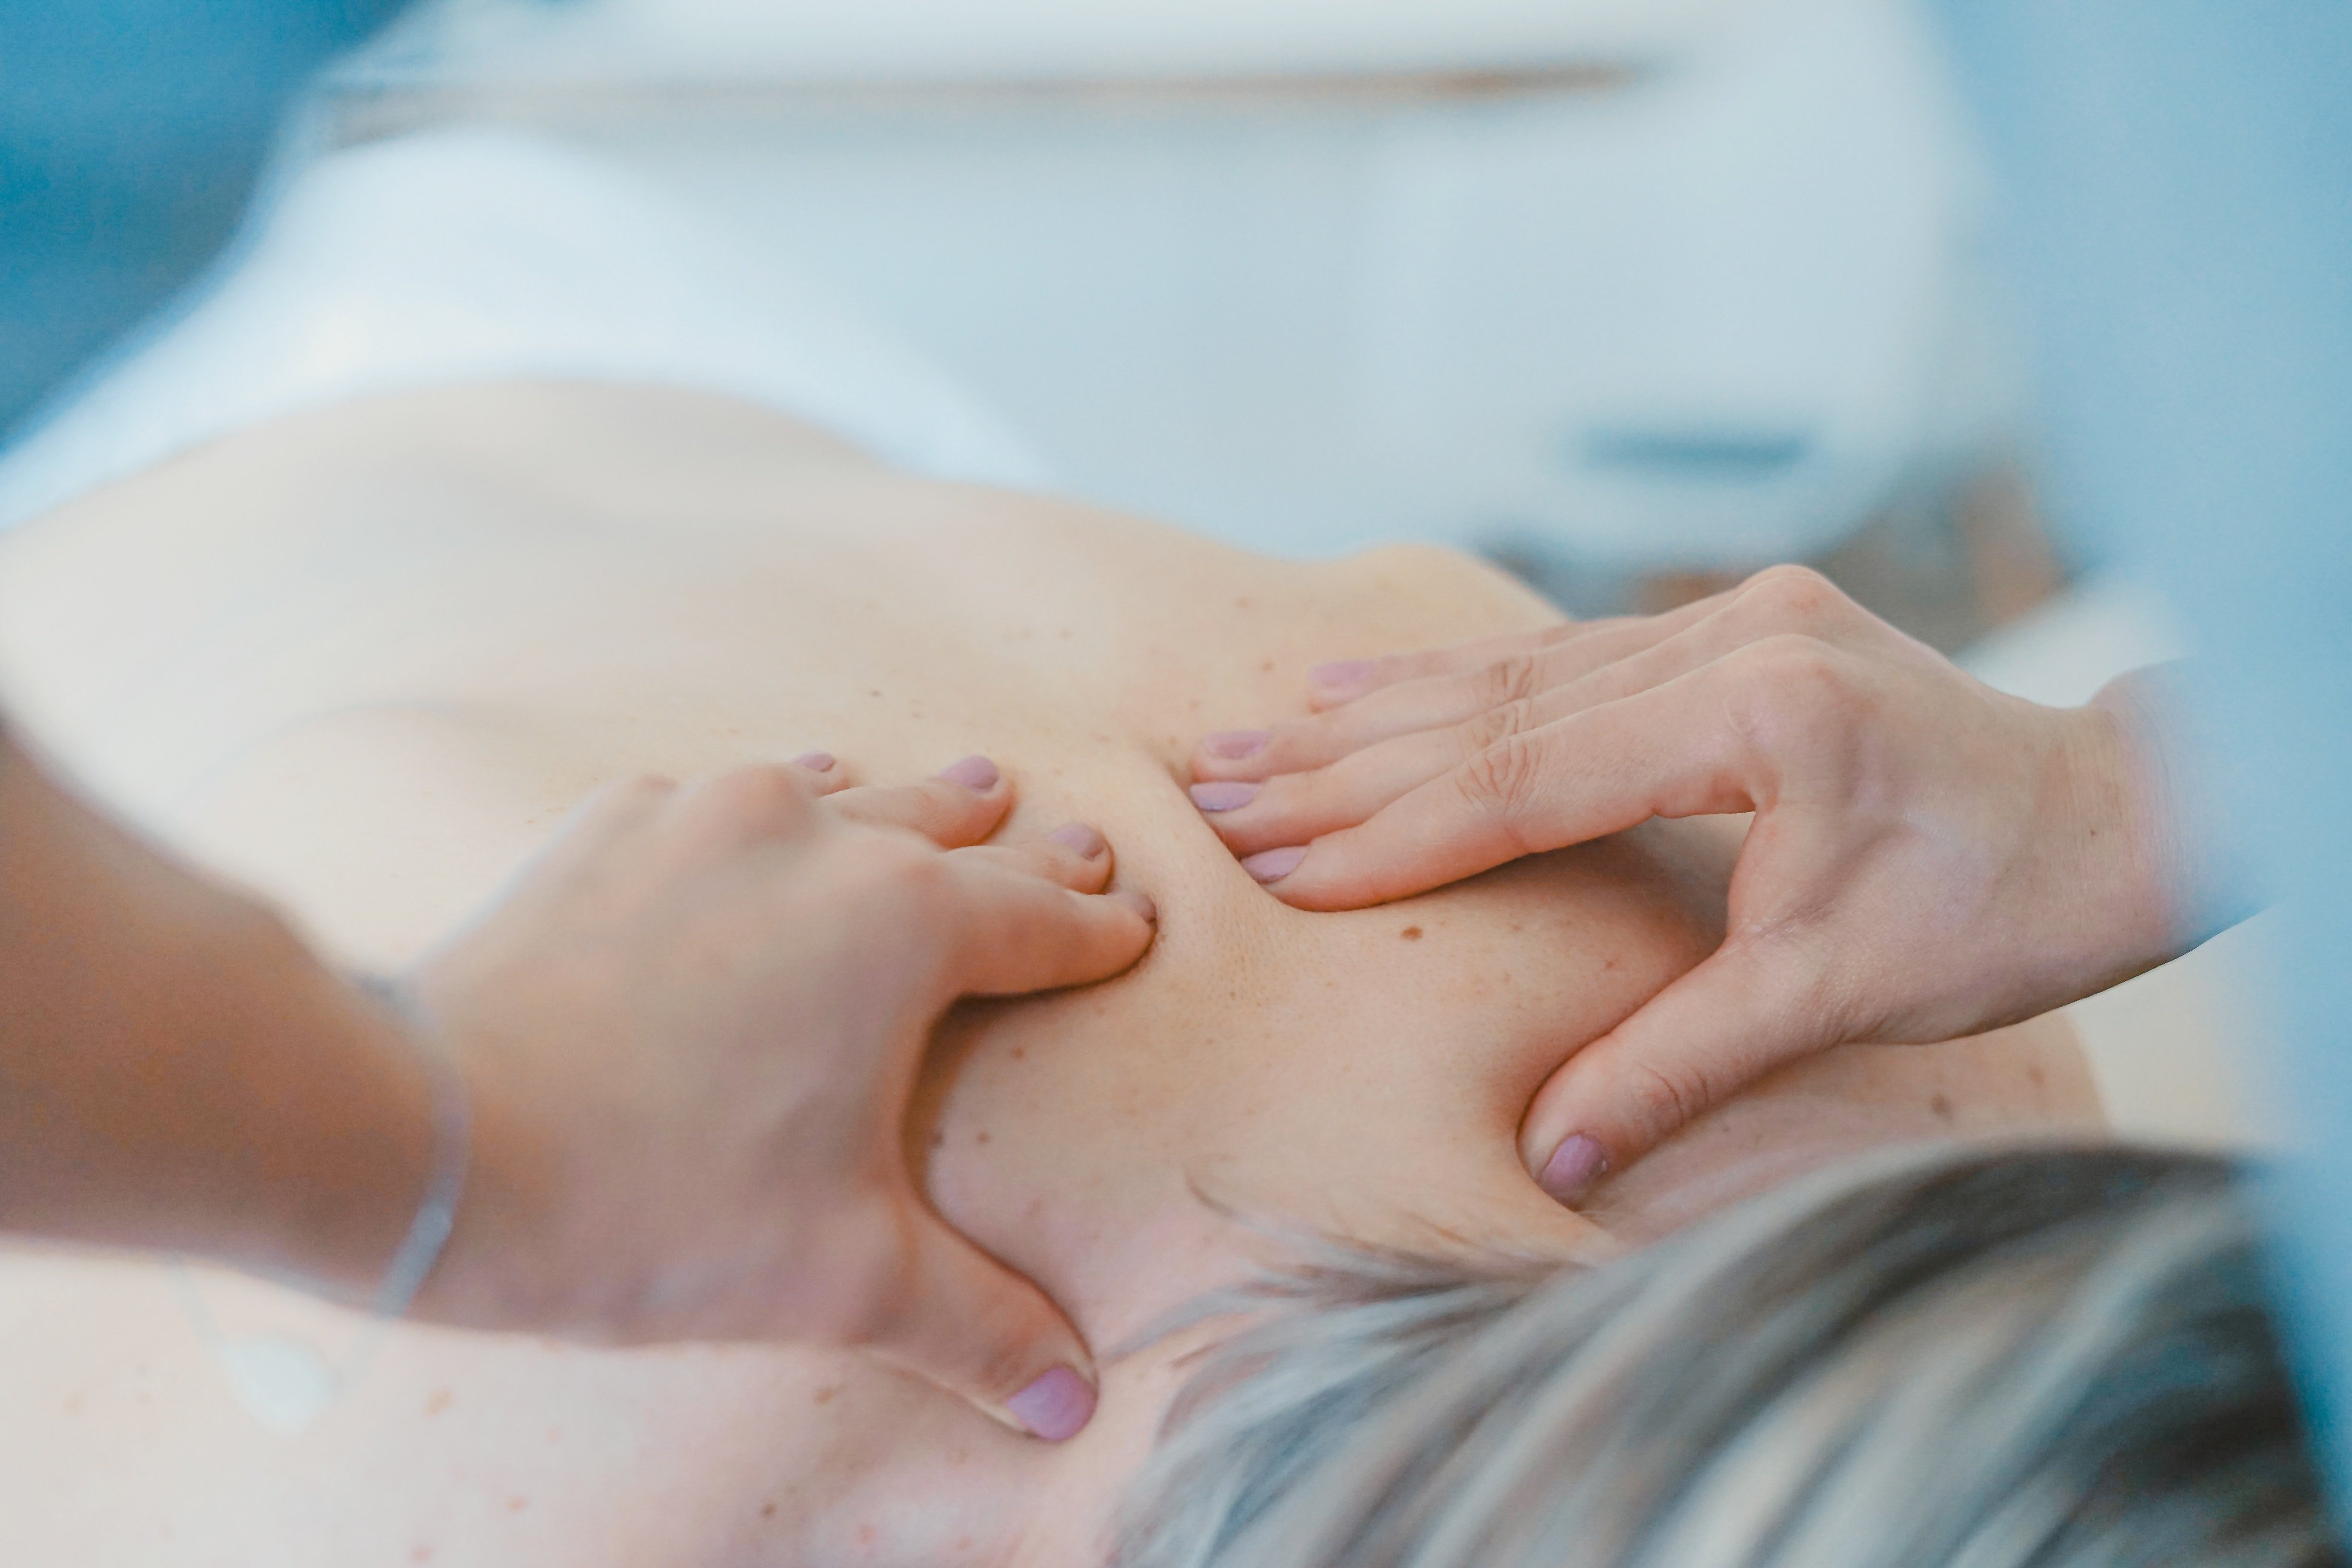 naturipath treating a patient ina naturopathy clinic in Central London